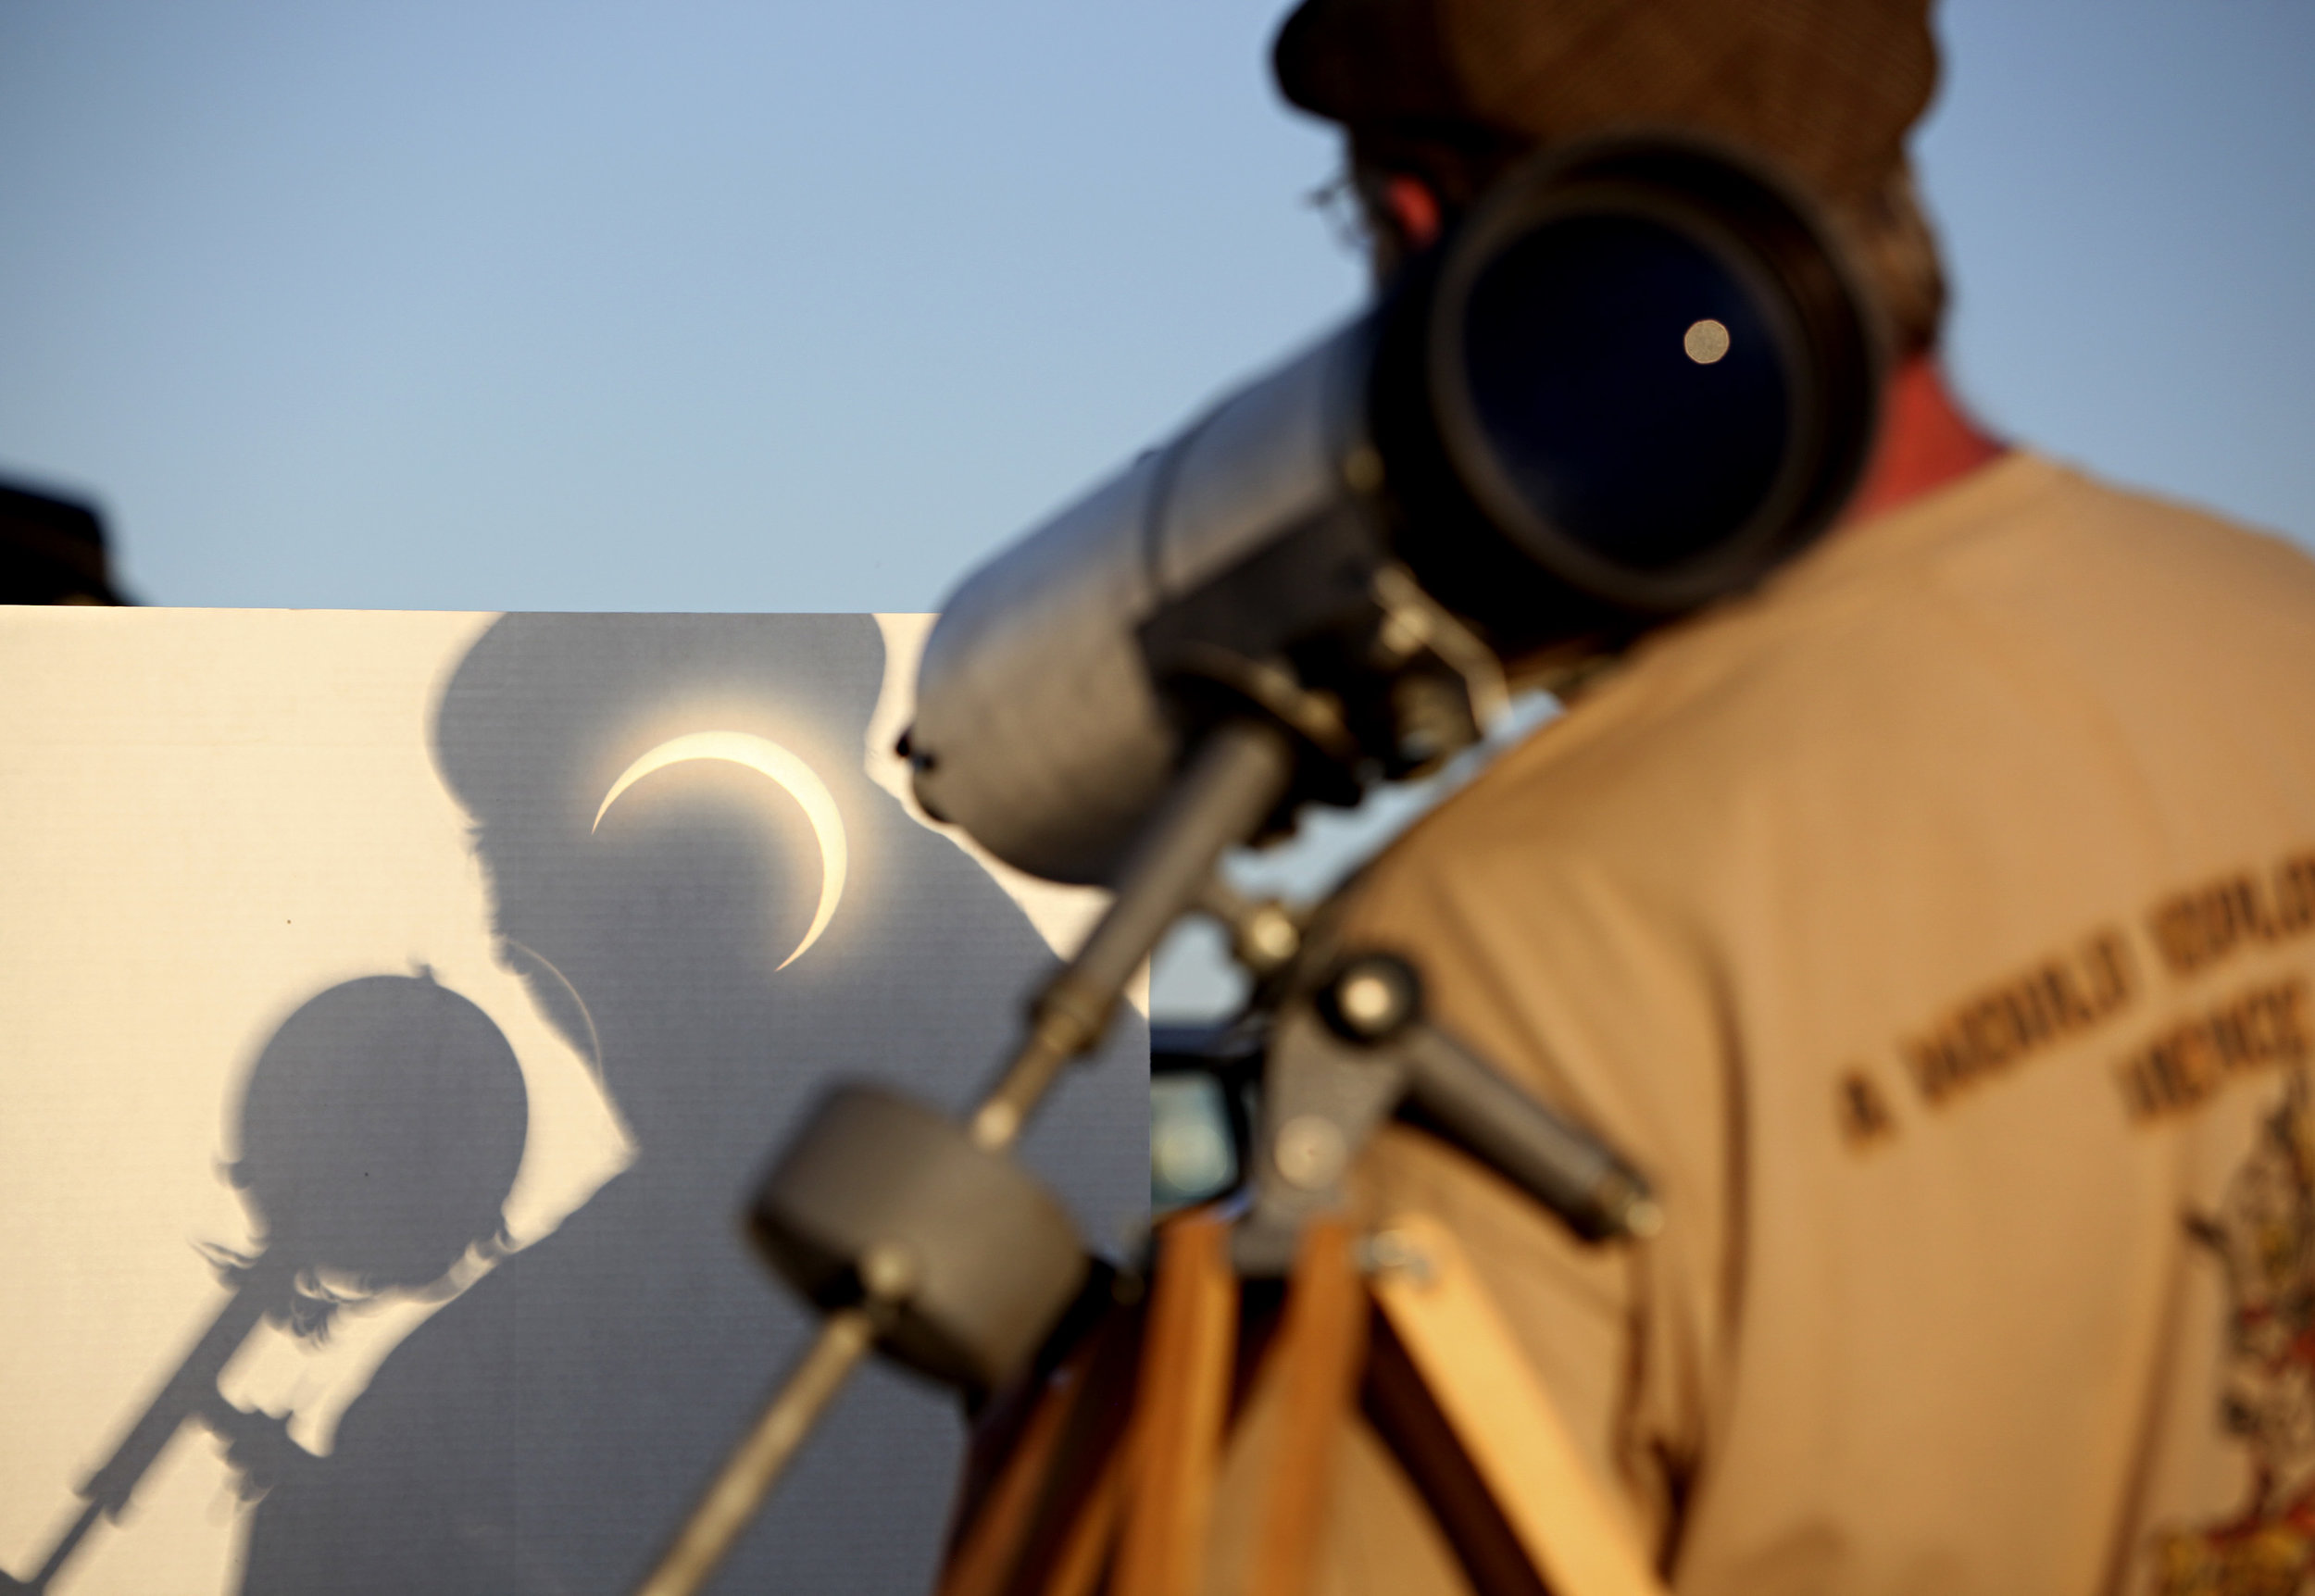 Dave Gallaher, from the University of Colorado in Boulder, CO, watches the annular solar eclipse projected into his shadow during the viewing party near the Hard Rock Casino Presents the Pavilion, Sunday, May 20, 2012, in Albuquerque, NM. (Morgan Petroski/Albuquerque Journal)